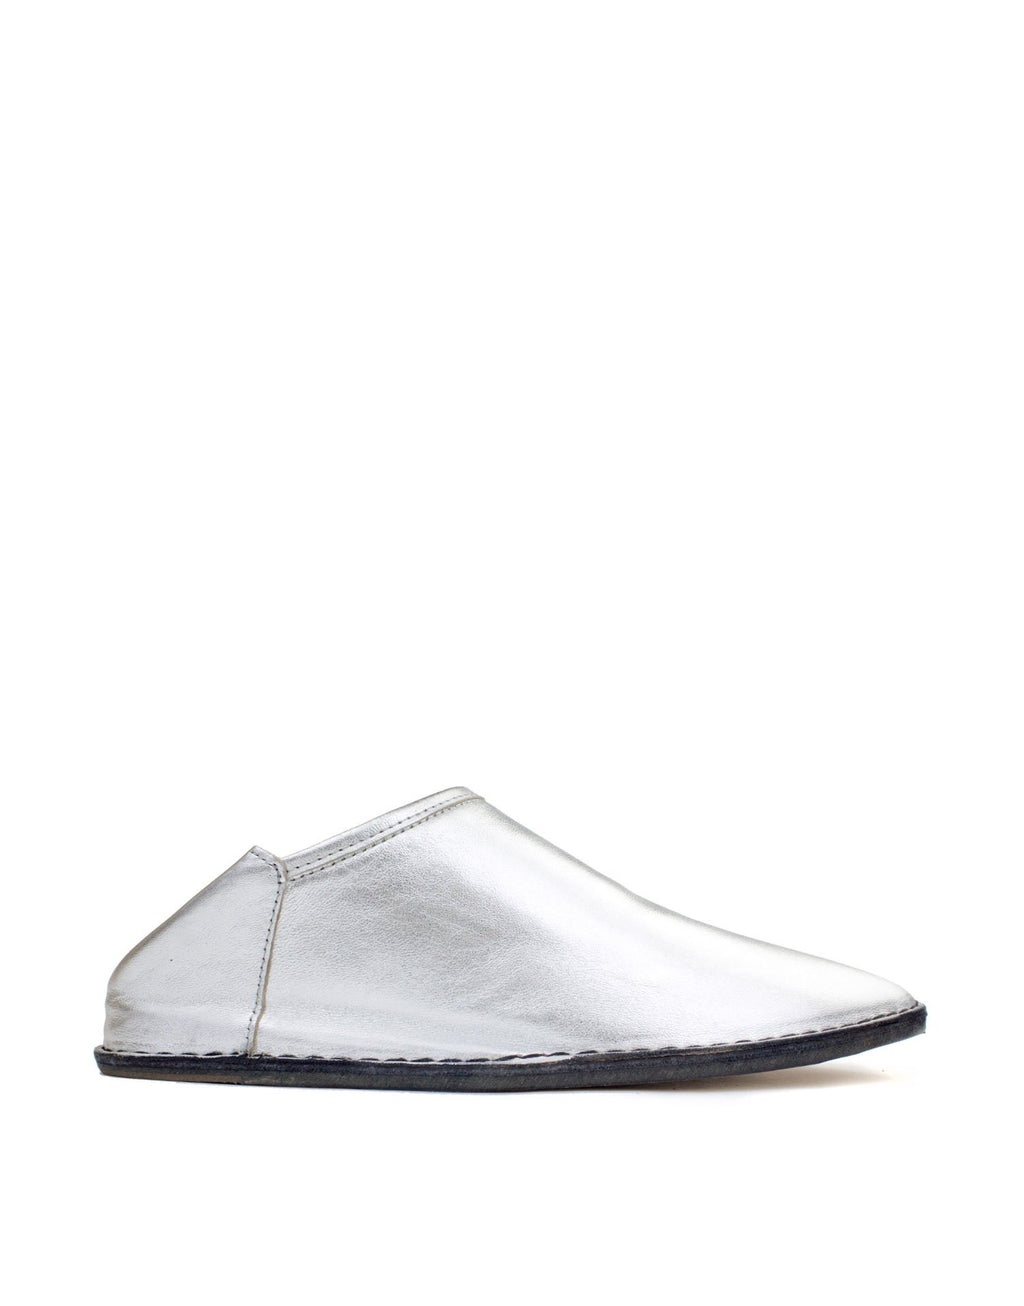 Silver metallic classic easy effortless slip on slipper shoe by designer Georgina Goodman, wear indoors and outdoors, style for all ages,